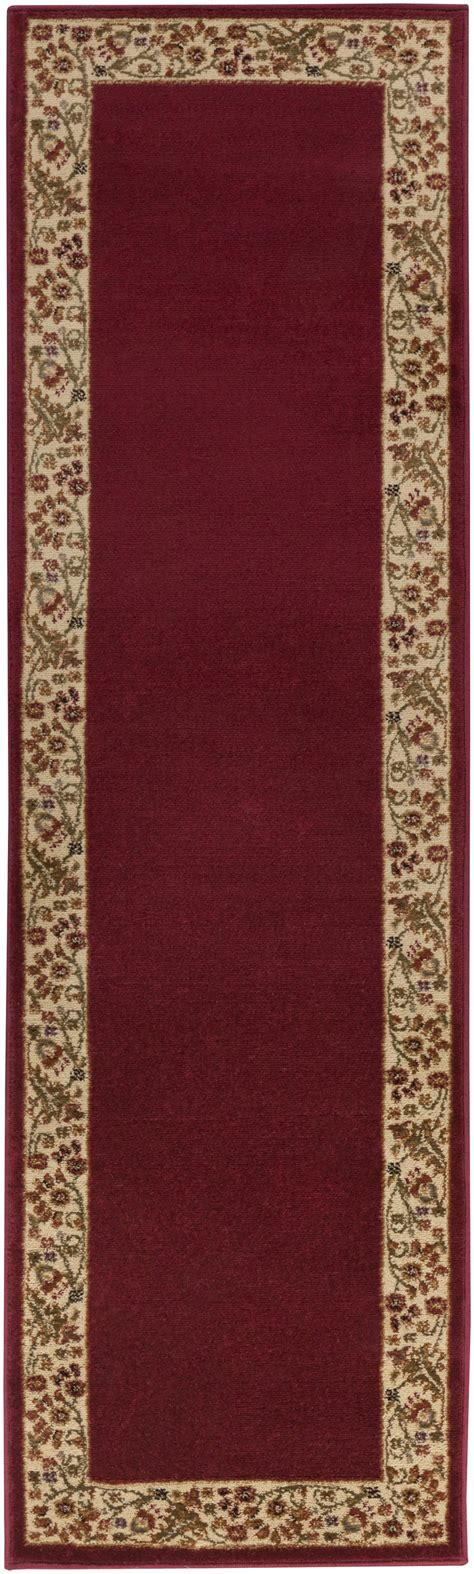 Surya Rug Dealers by Surya Midtown 2 2 Quot X 7 6 Quot Sol Furniture Rugs